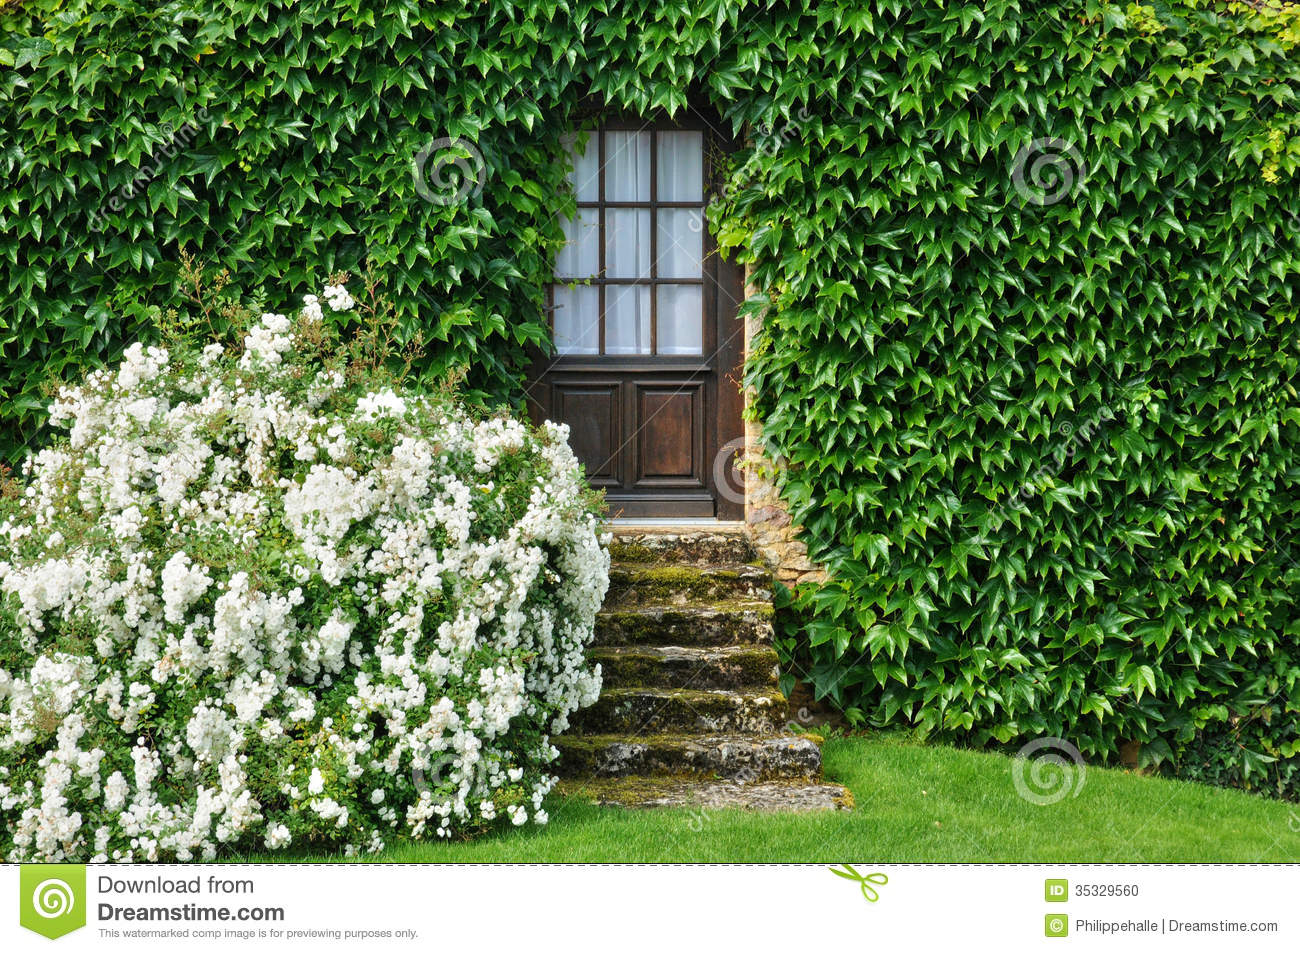 France picturesque jardins du manoir d eyrignac in dordogne stock photo image 35329560 - Jardin du manoir d eyrignac ...